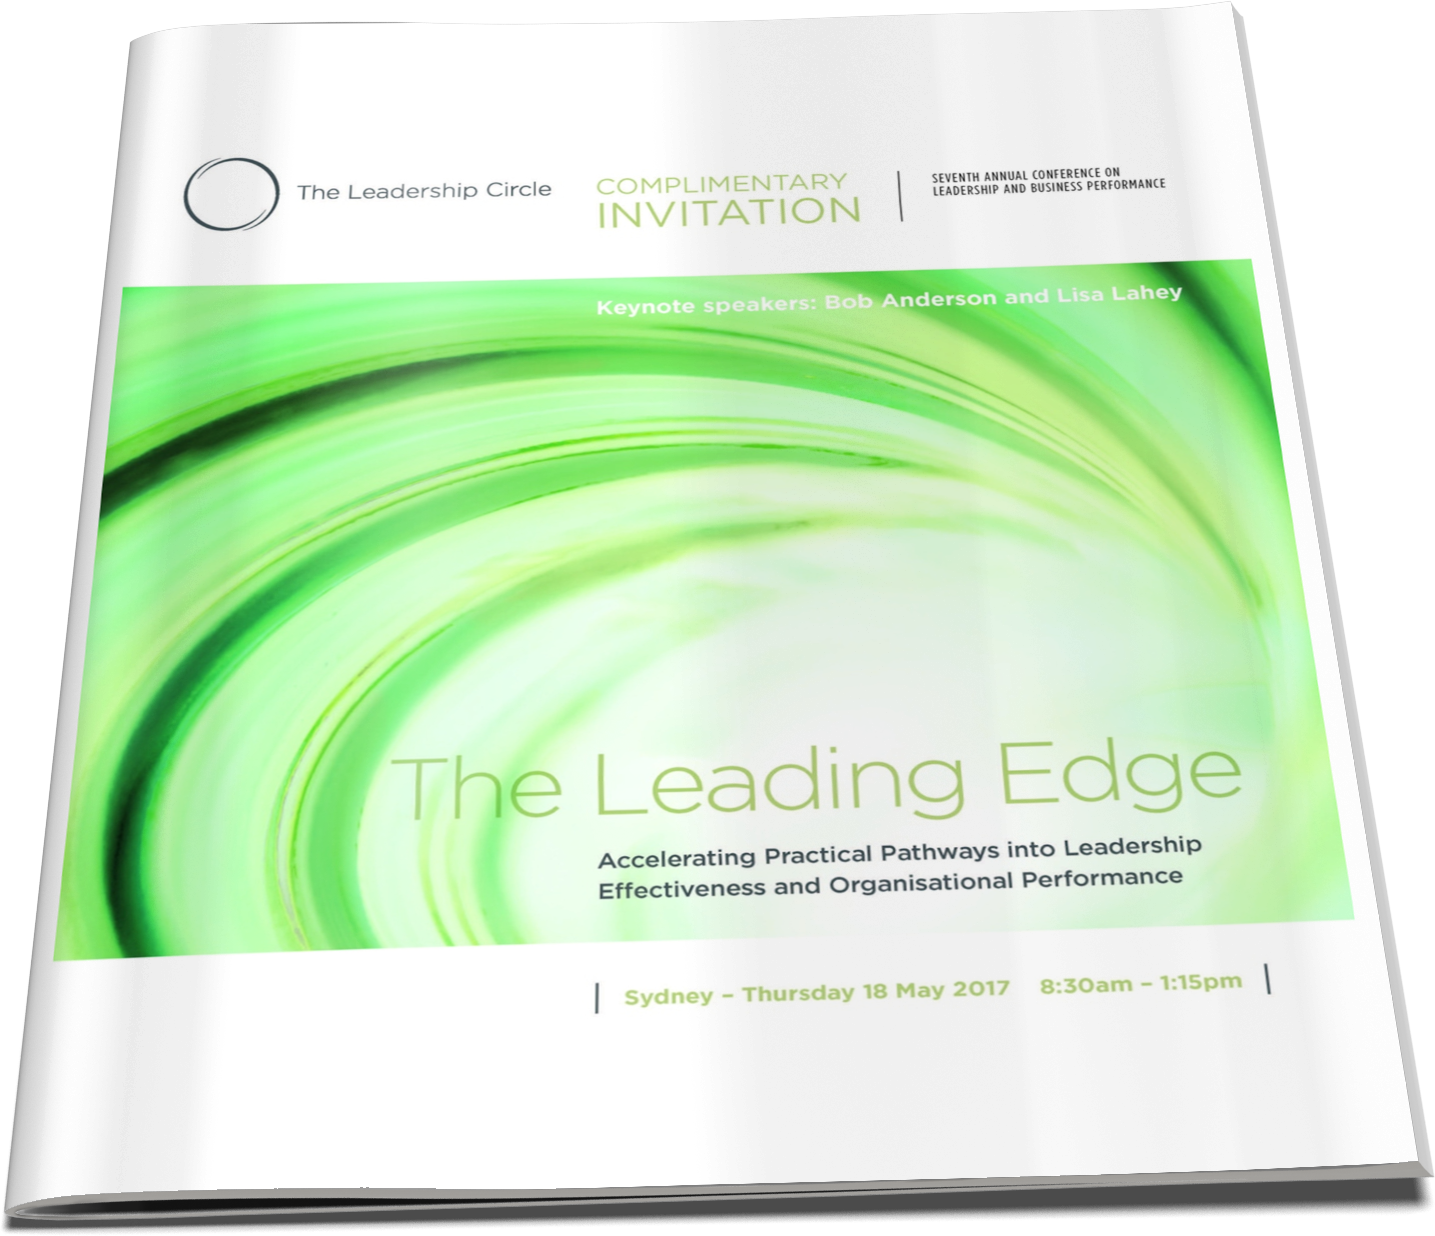 18 May, 2017 - The Leading Edge: Accelerating Practical Pathways into Leadership Effectiveness and Organisational Performance